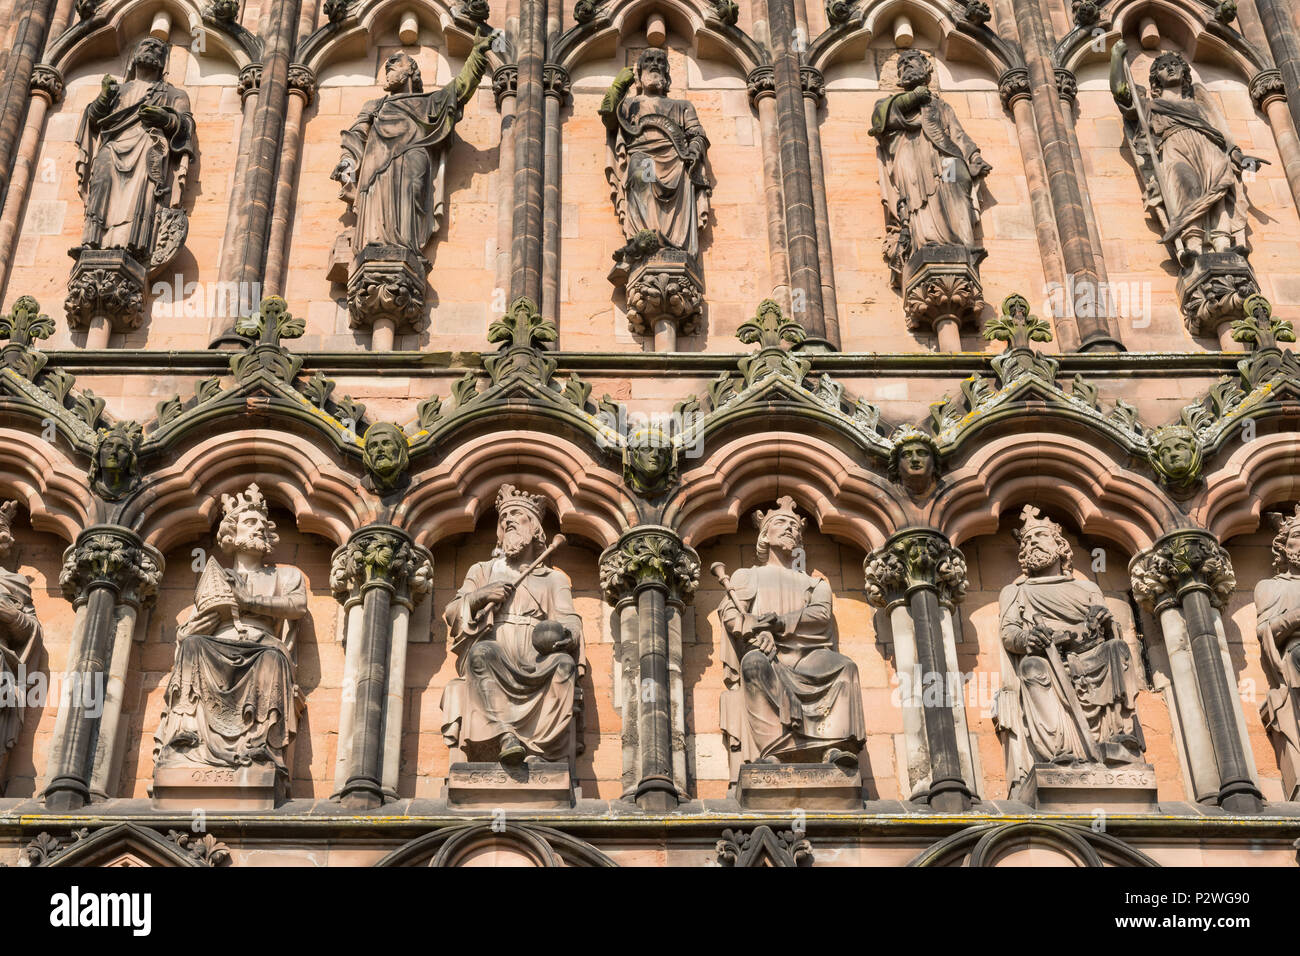 Lichfield Cathedral close up of carvings of Saxon Kings - from left to right -  Offa, Egbert, Ethelwolf, Ethelbert, - Stock Image